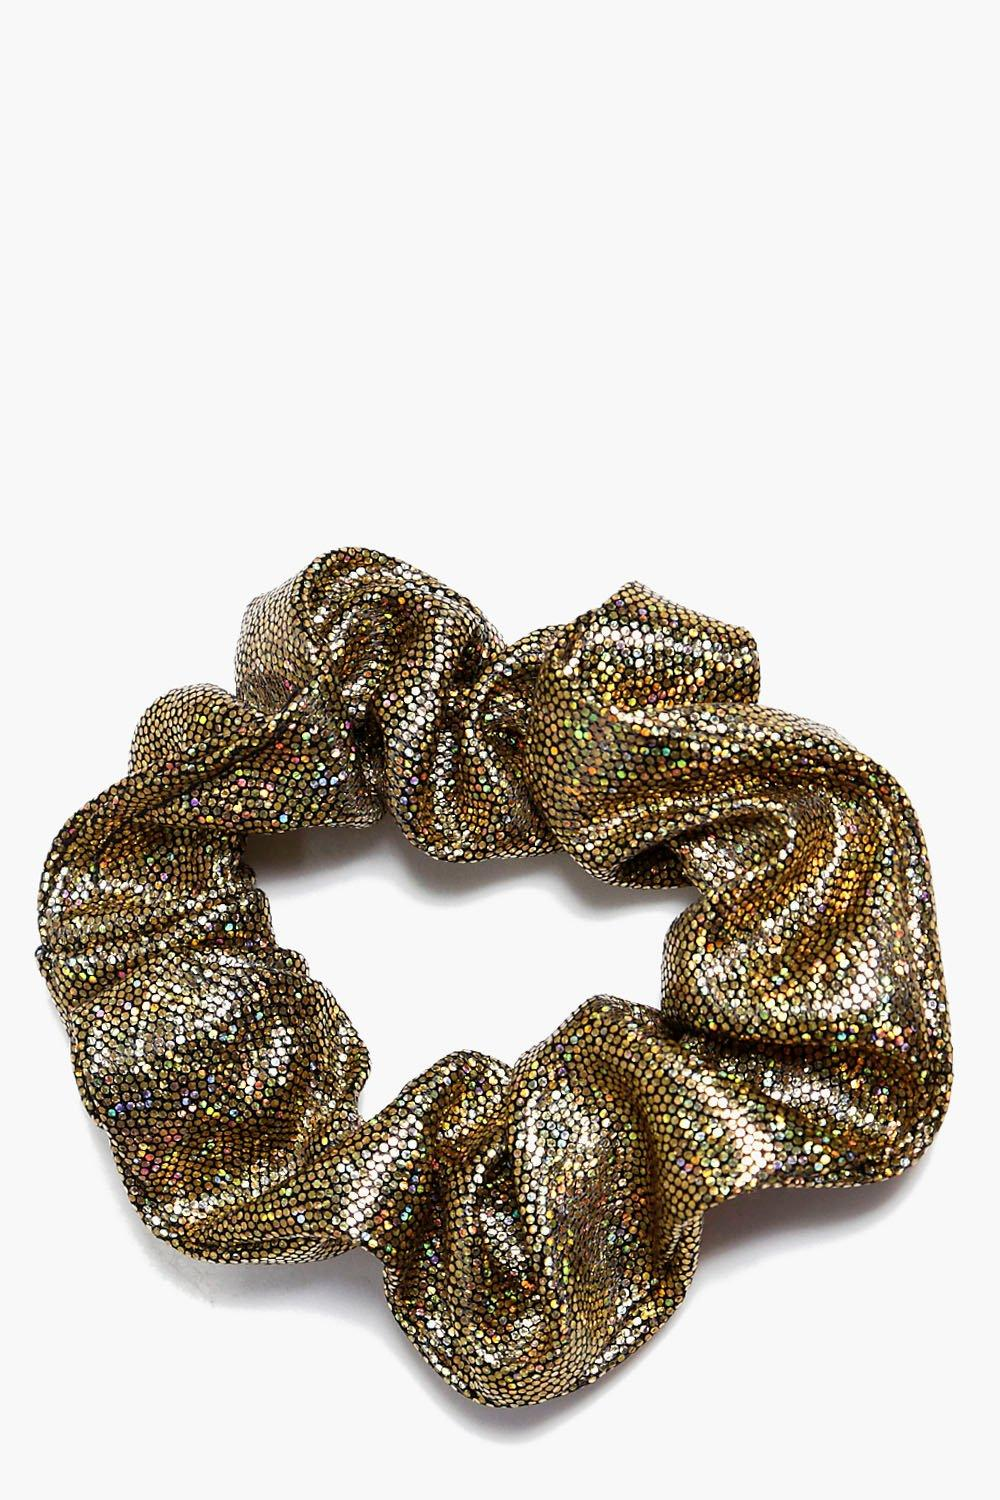 Spotty Metallic Scrunchie - gold - Jemima Spotty M